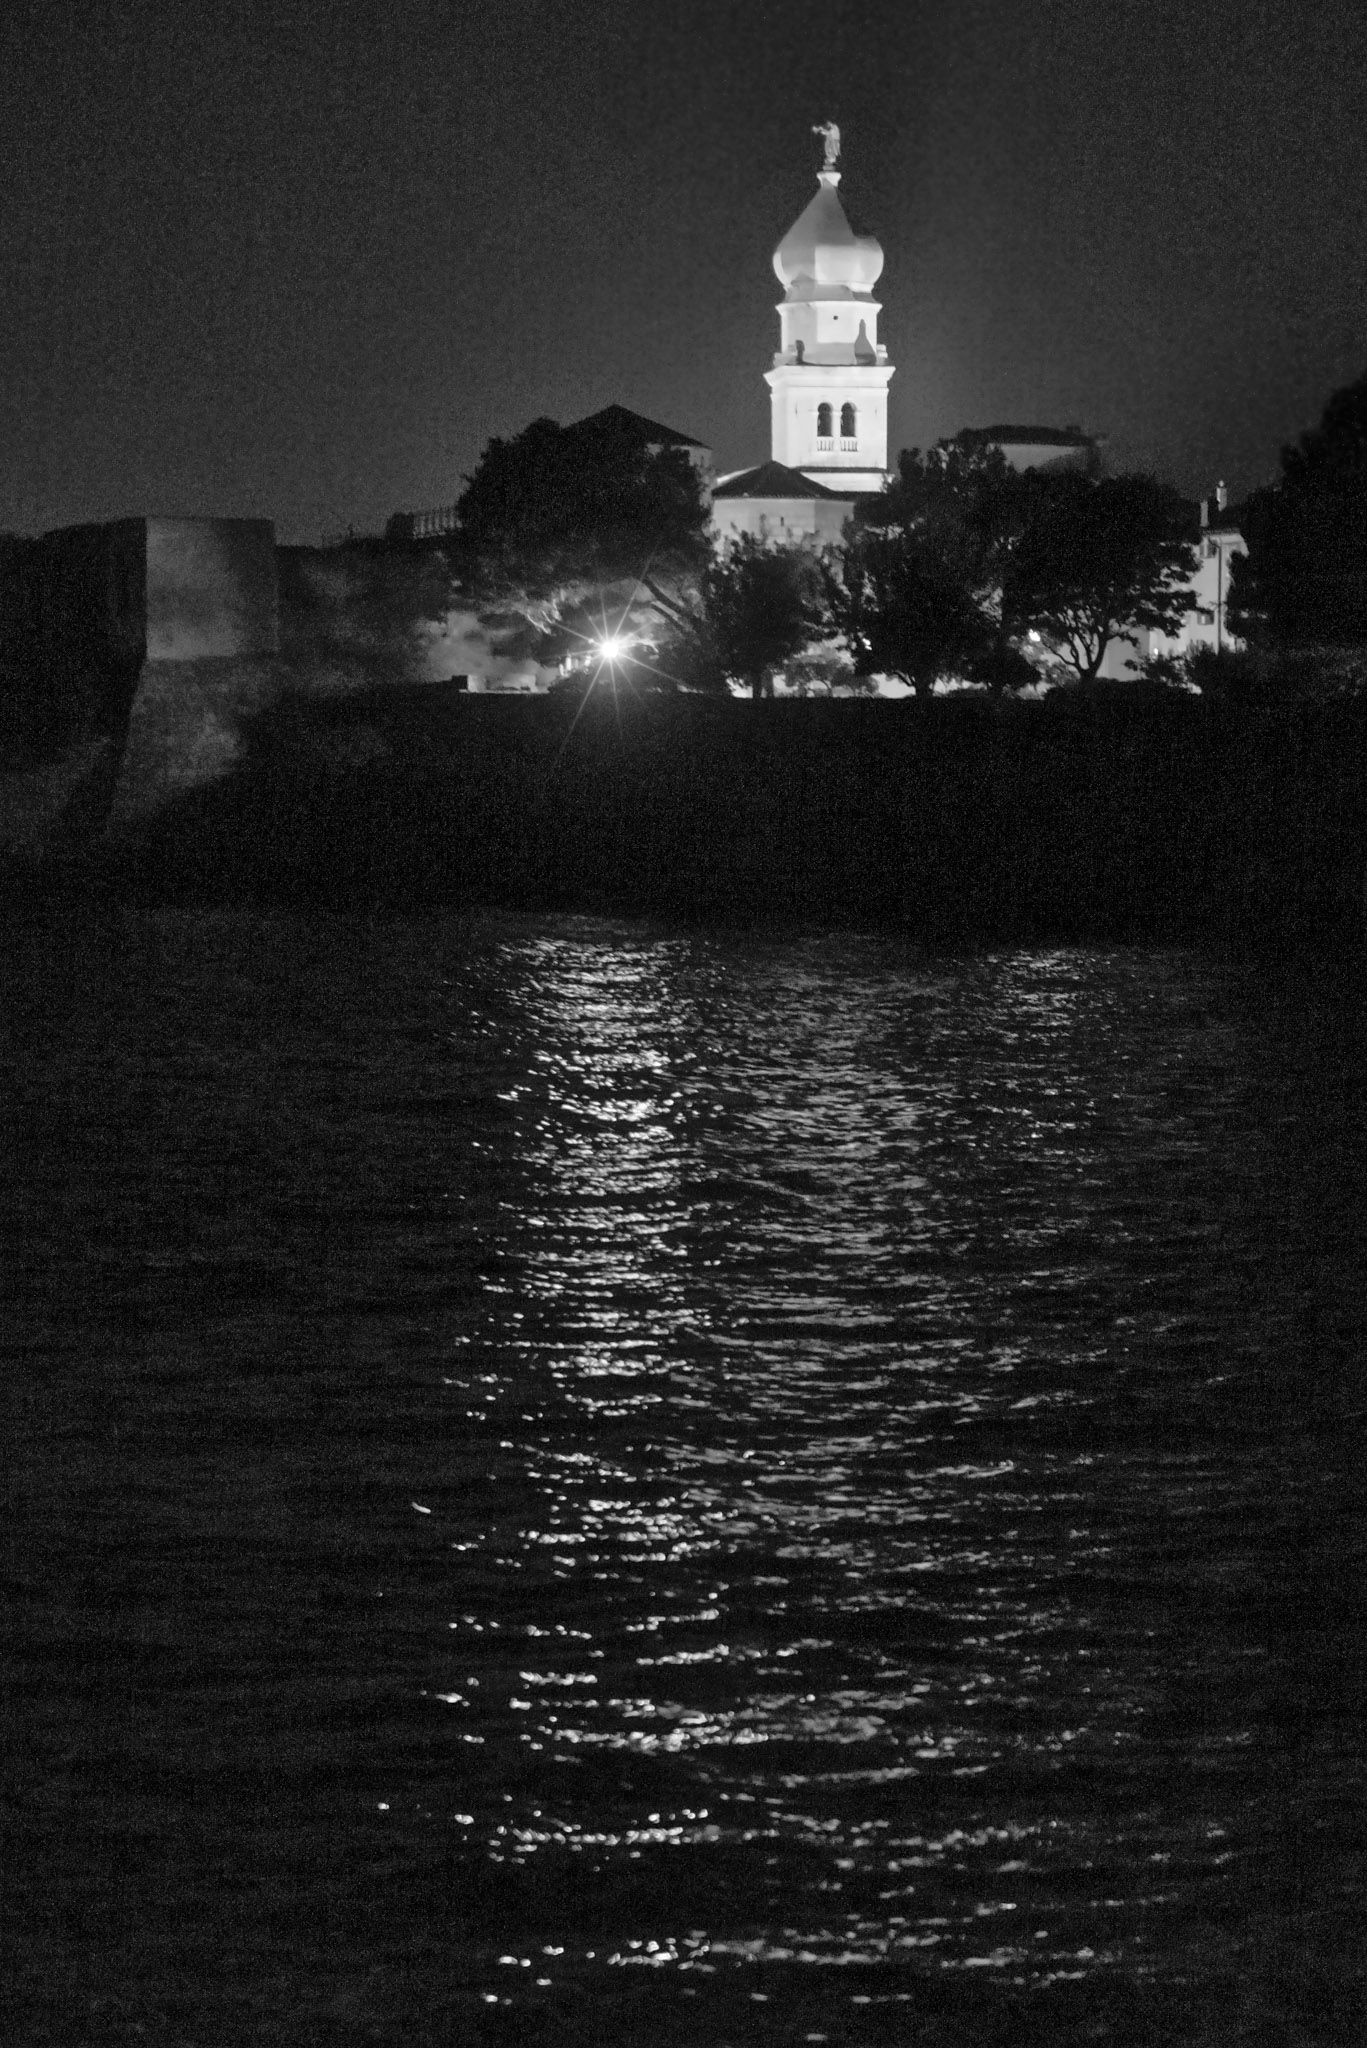 Krk Cathedral is illuminated at night and casts reflections in the harbor waters.